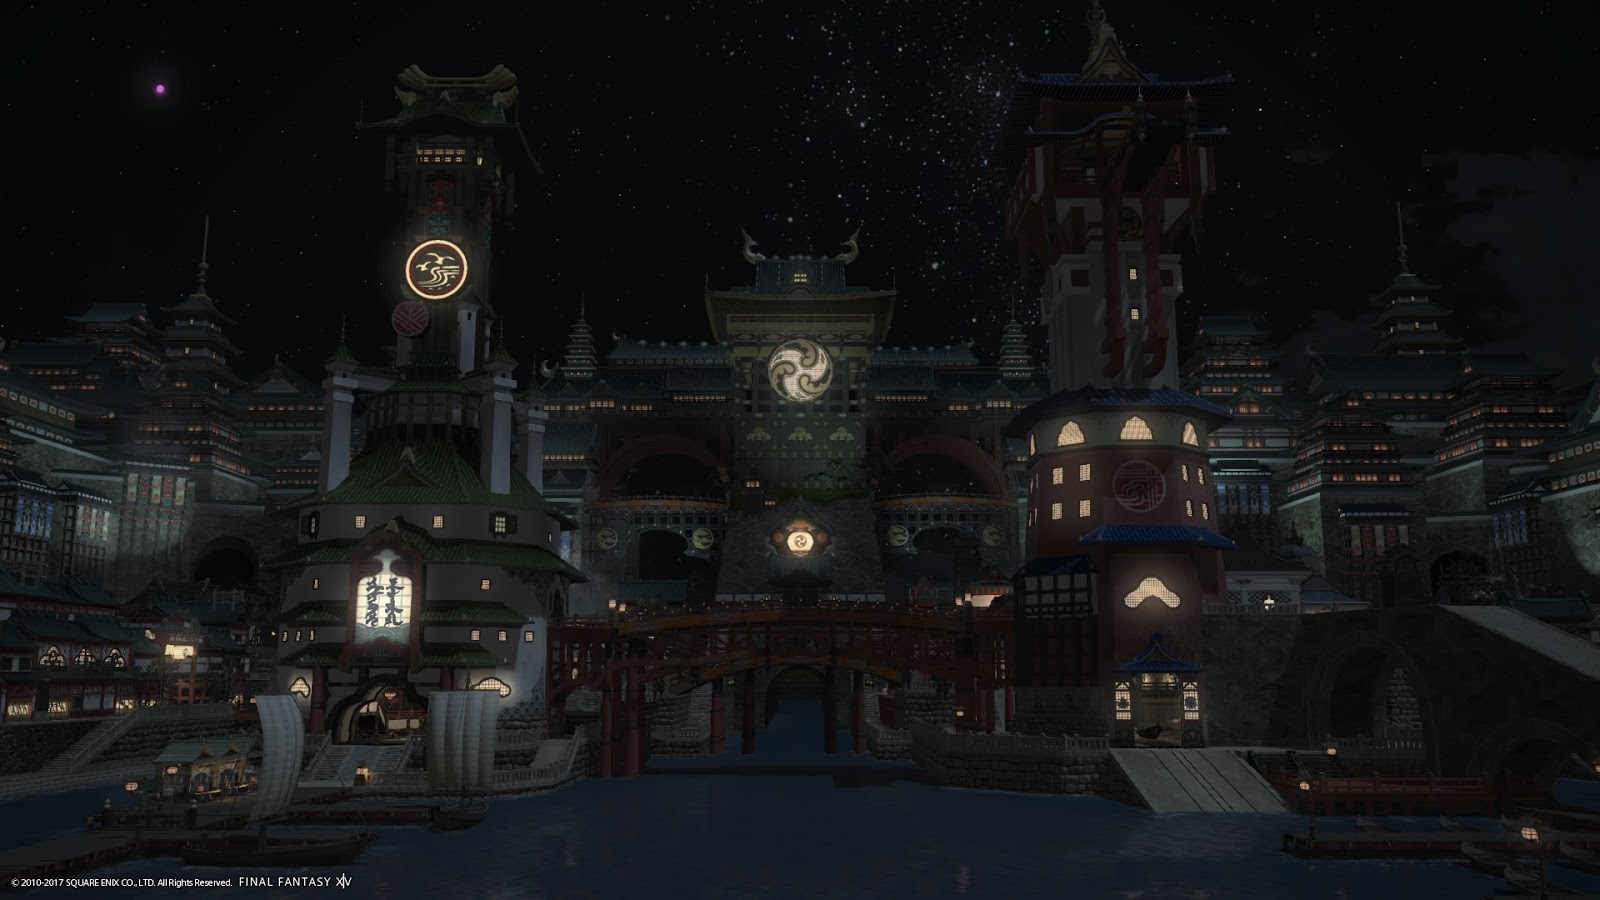 A month of Final Fantasy XIV: Stormblood - Diary 1: First